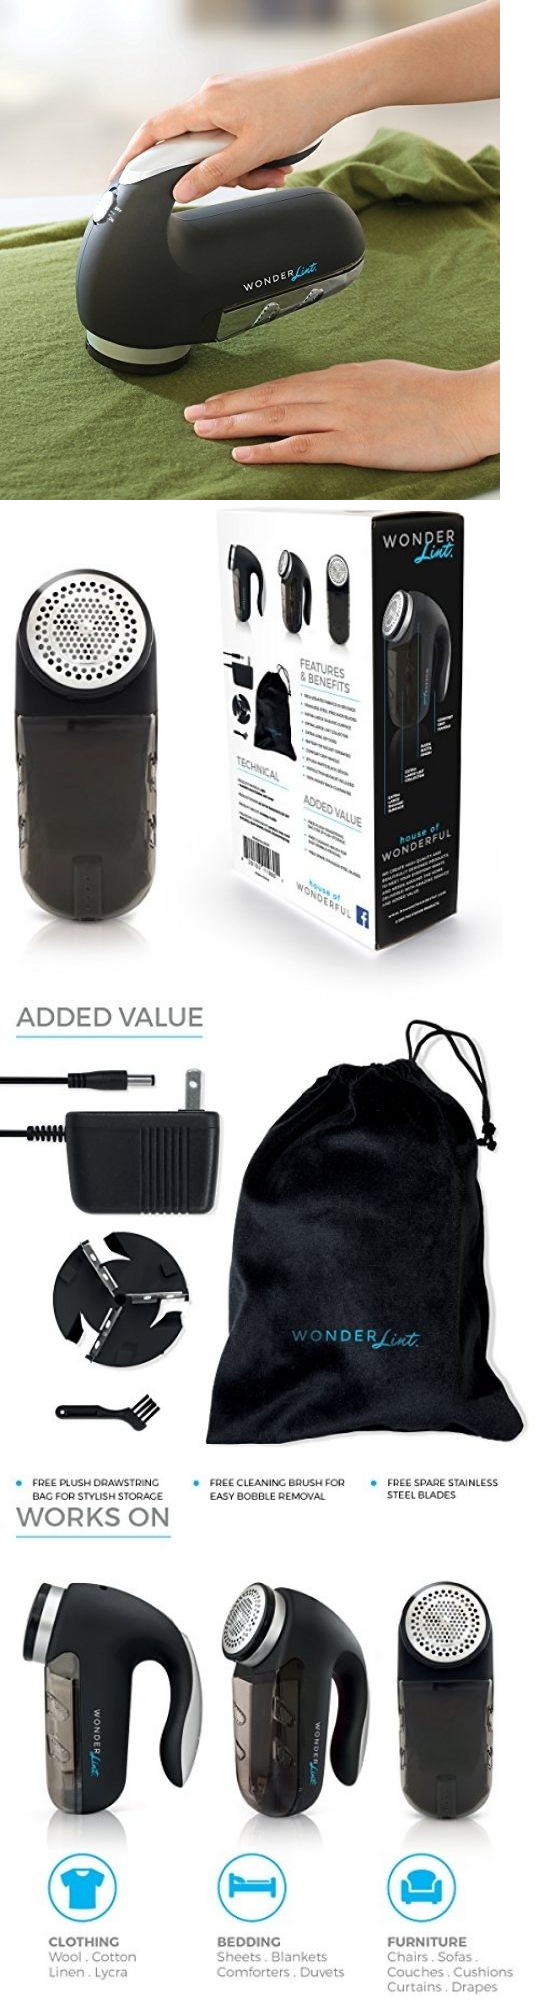 Lint Removers And Lint Shavers 170626 Sweater And Fabric Shaver  6fb5bfa2f25e69ac13abc1a347ca817b 817192294856363106. Evercare Giant Fabric  Shaver Bags